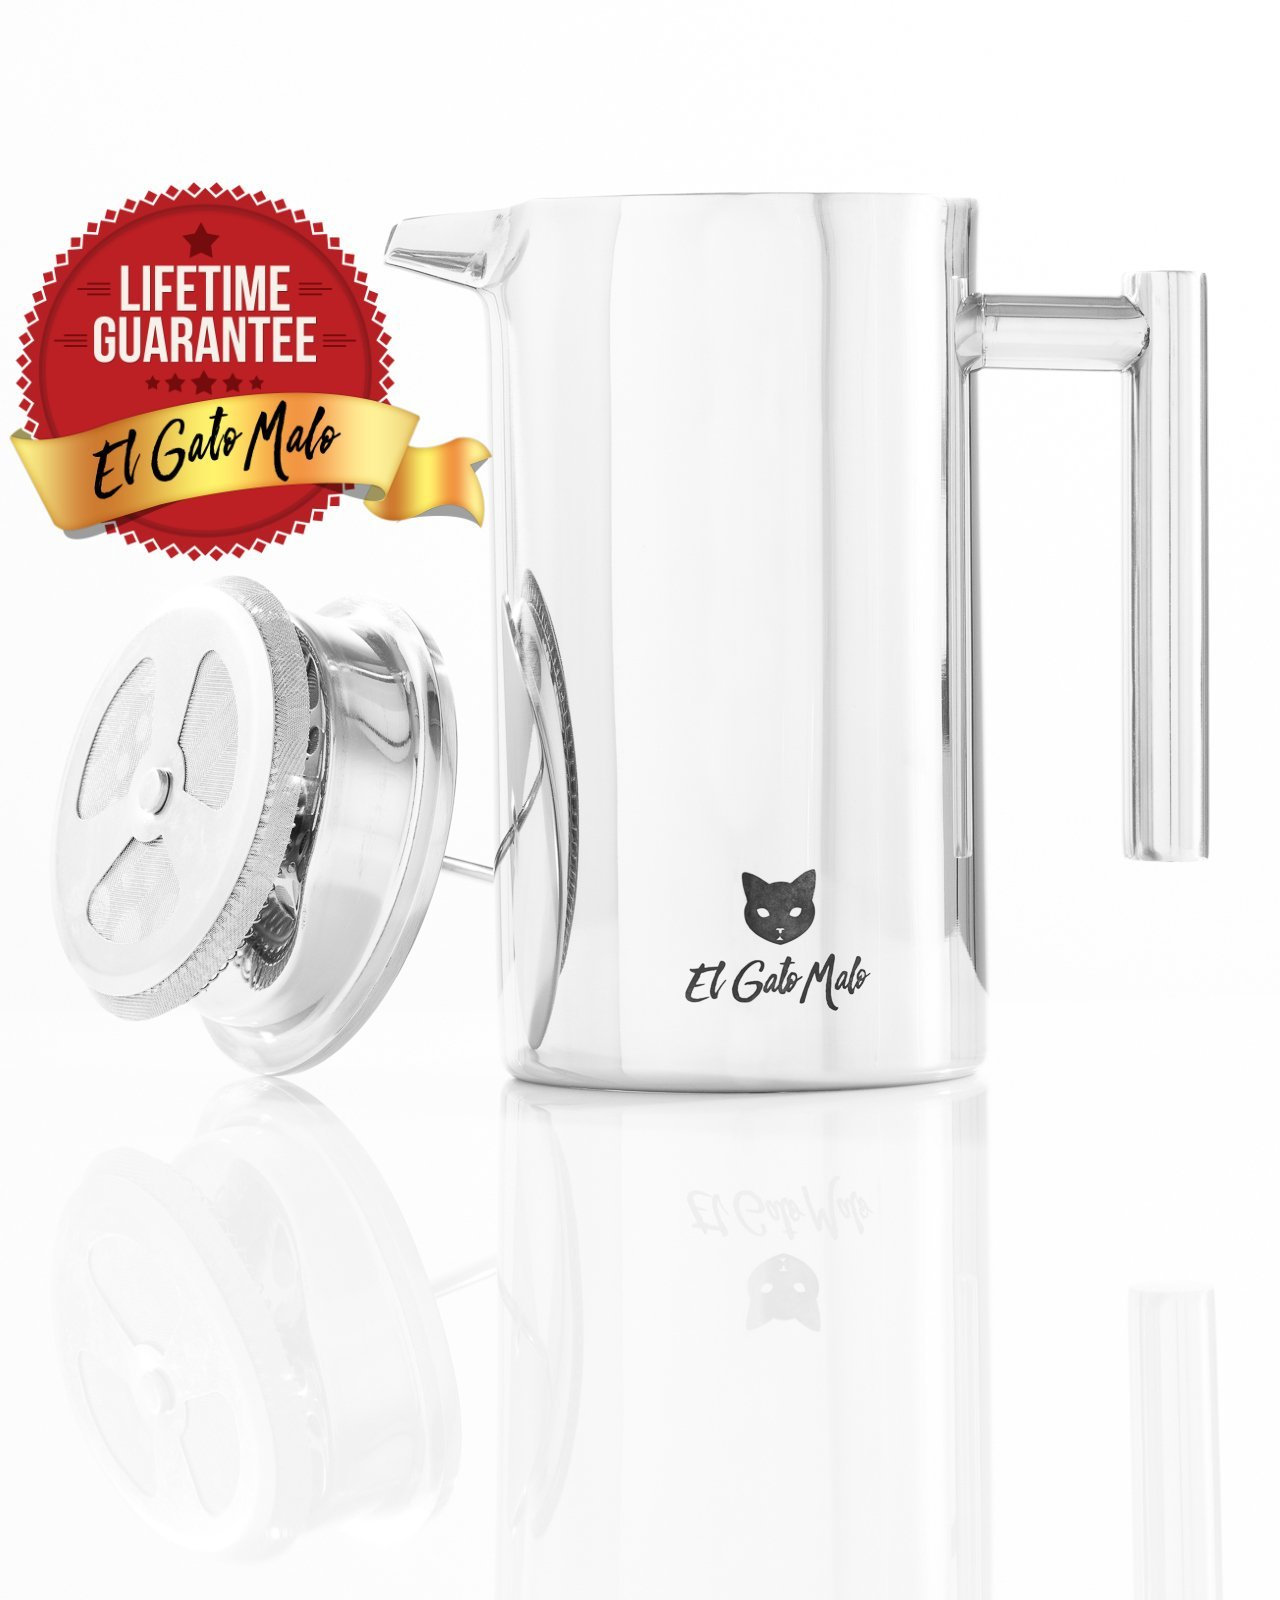 Stainless Steel French Press Coffee Maker - Double Wall Insulated - Tea and Coffee Press - 34 oz/8 Cup - The Cat Logo = Quality.